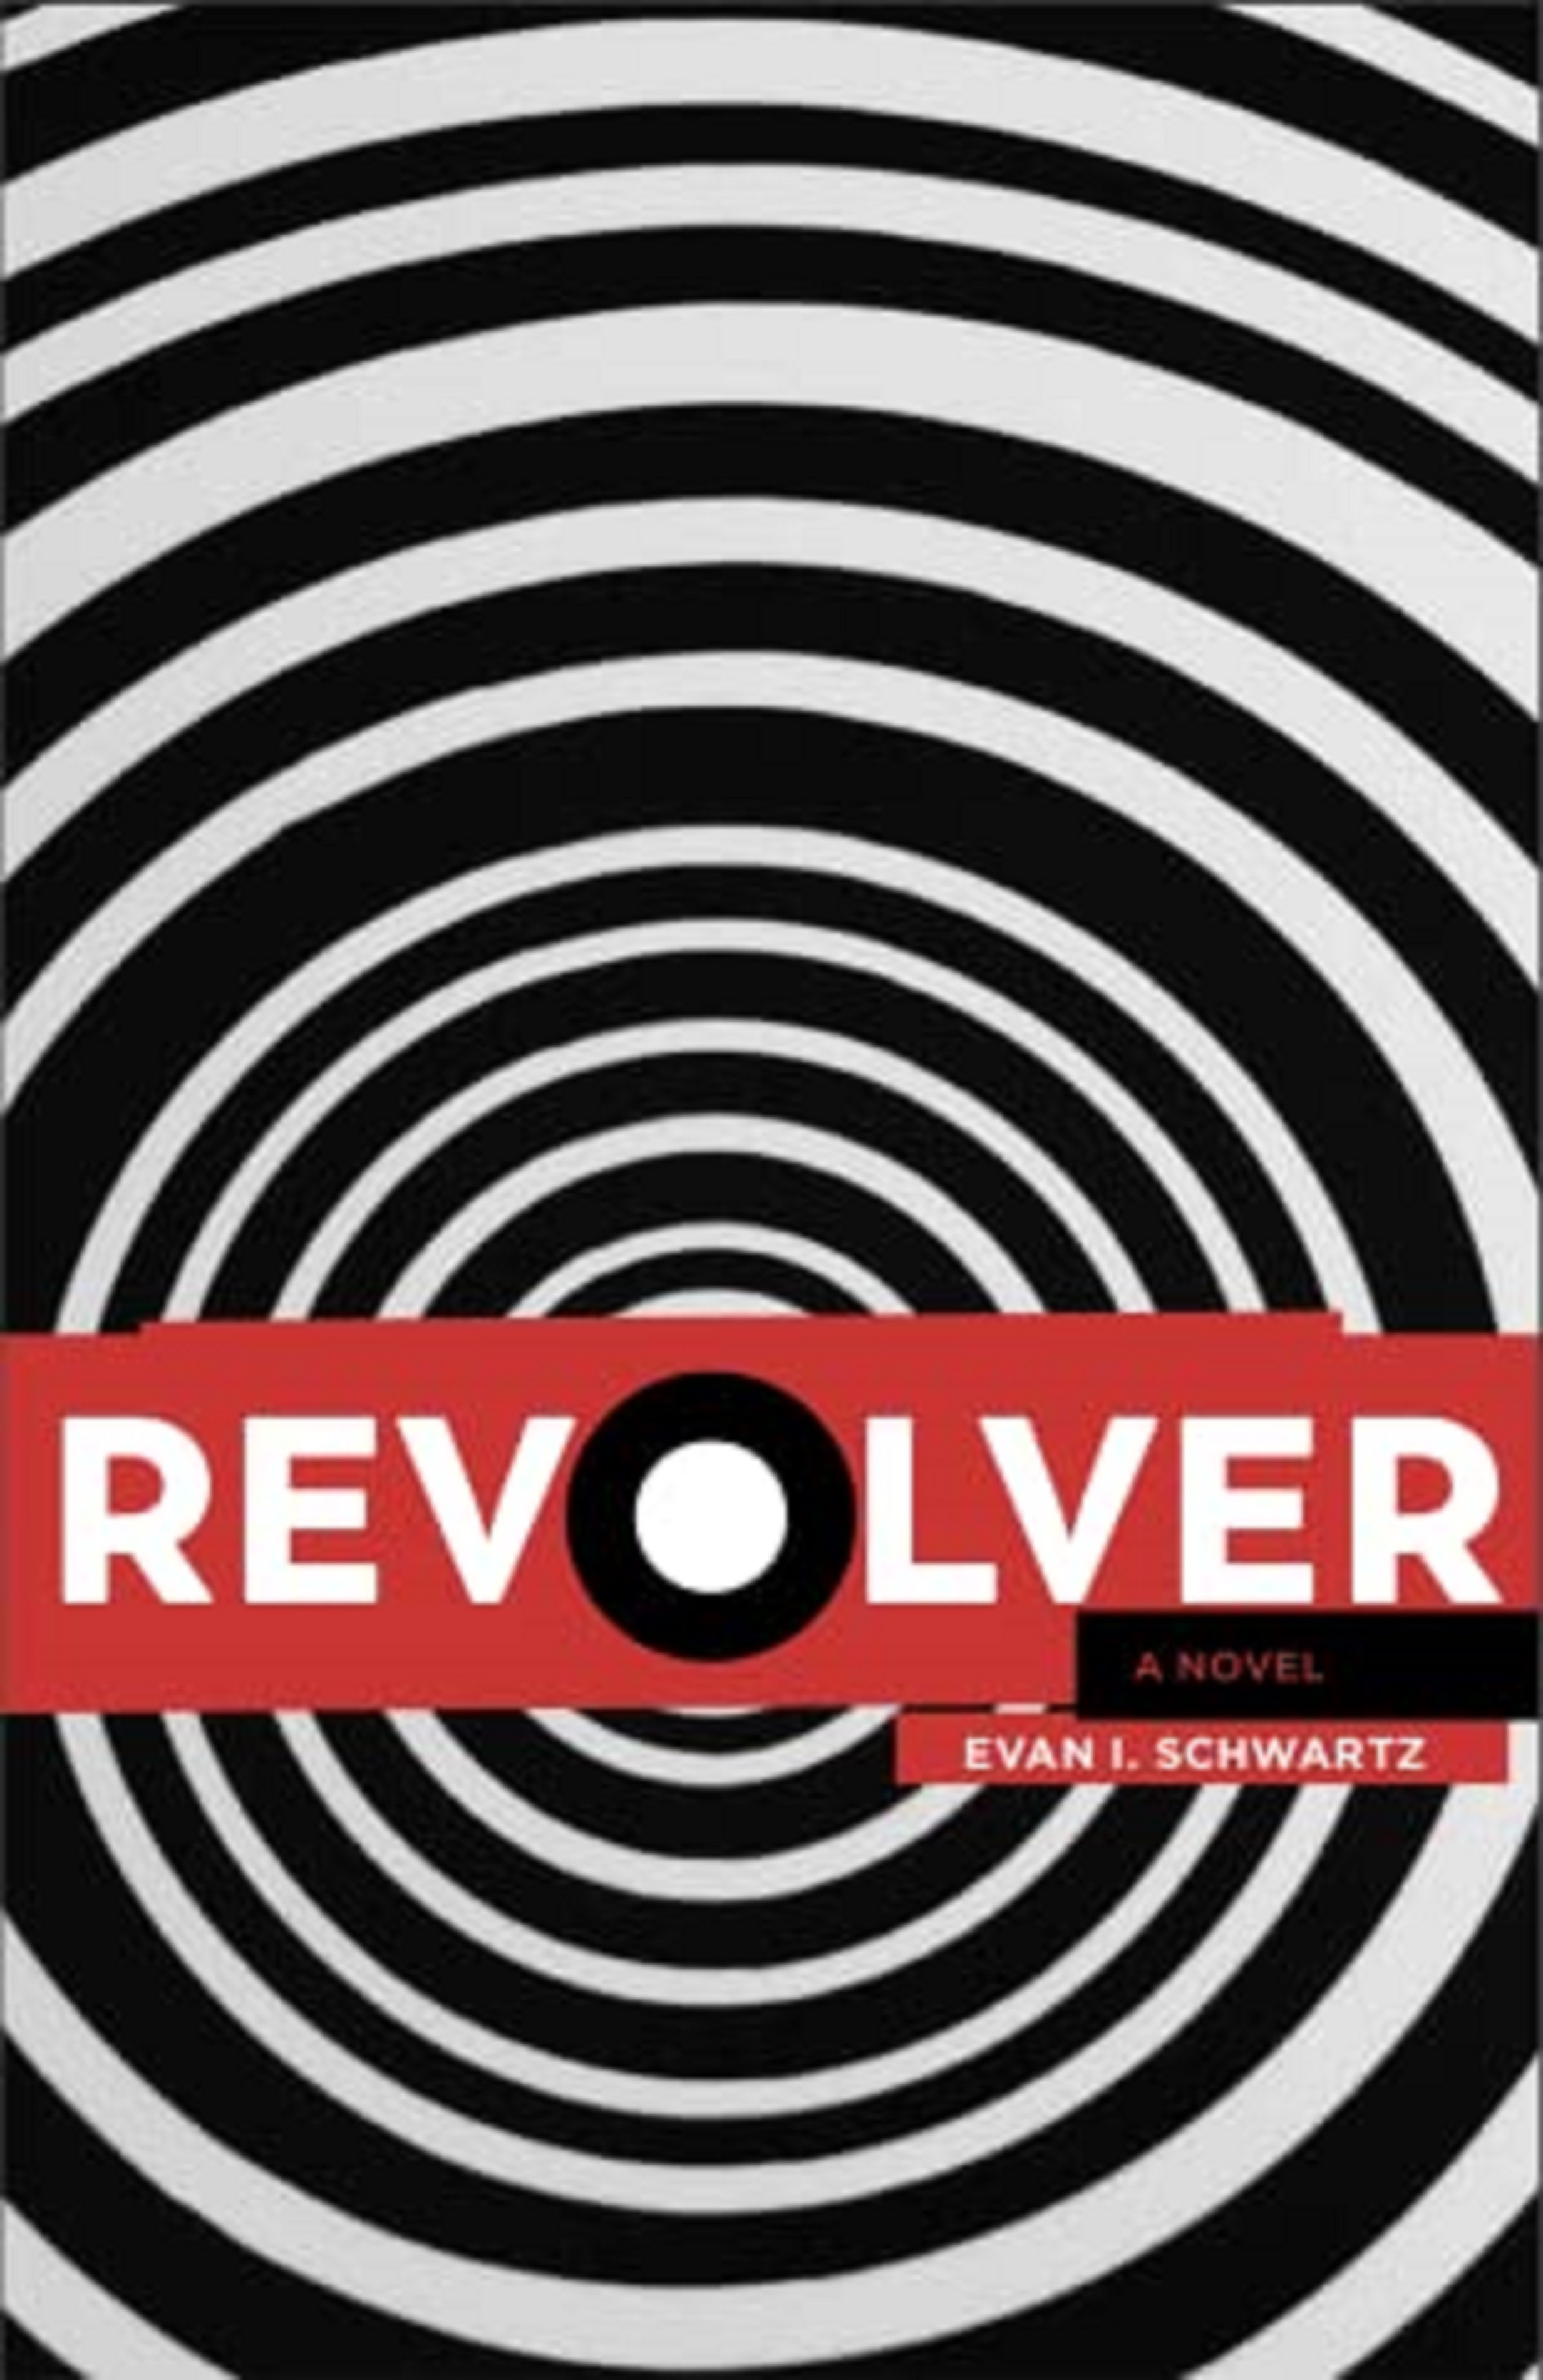 Revolver: a novel by Evan I. Schwartz | Review